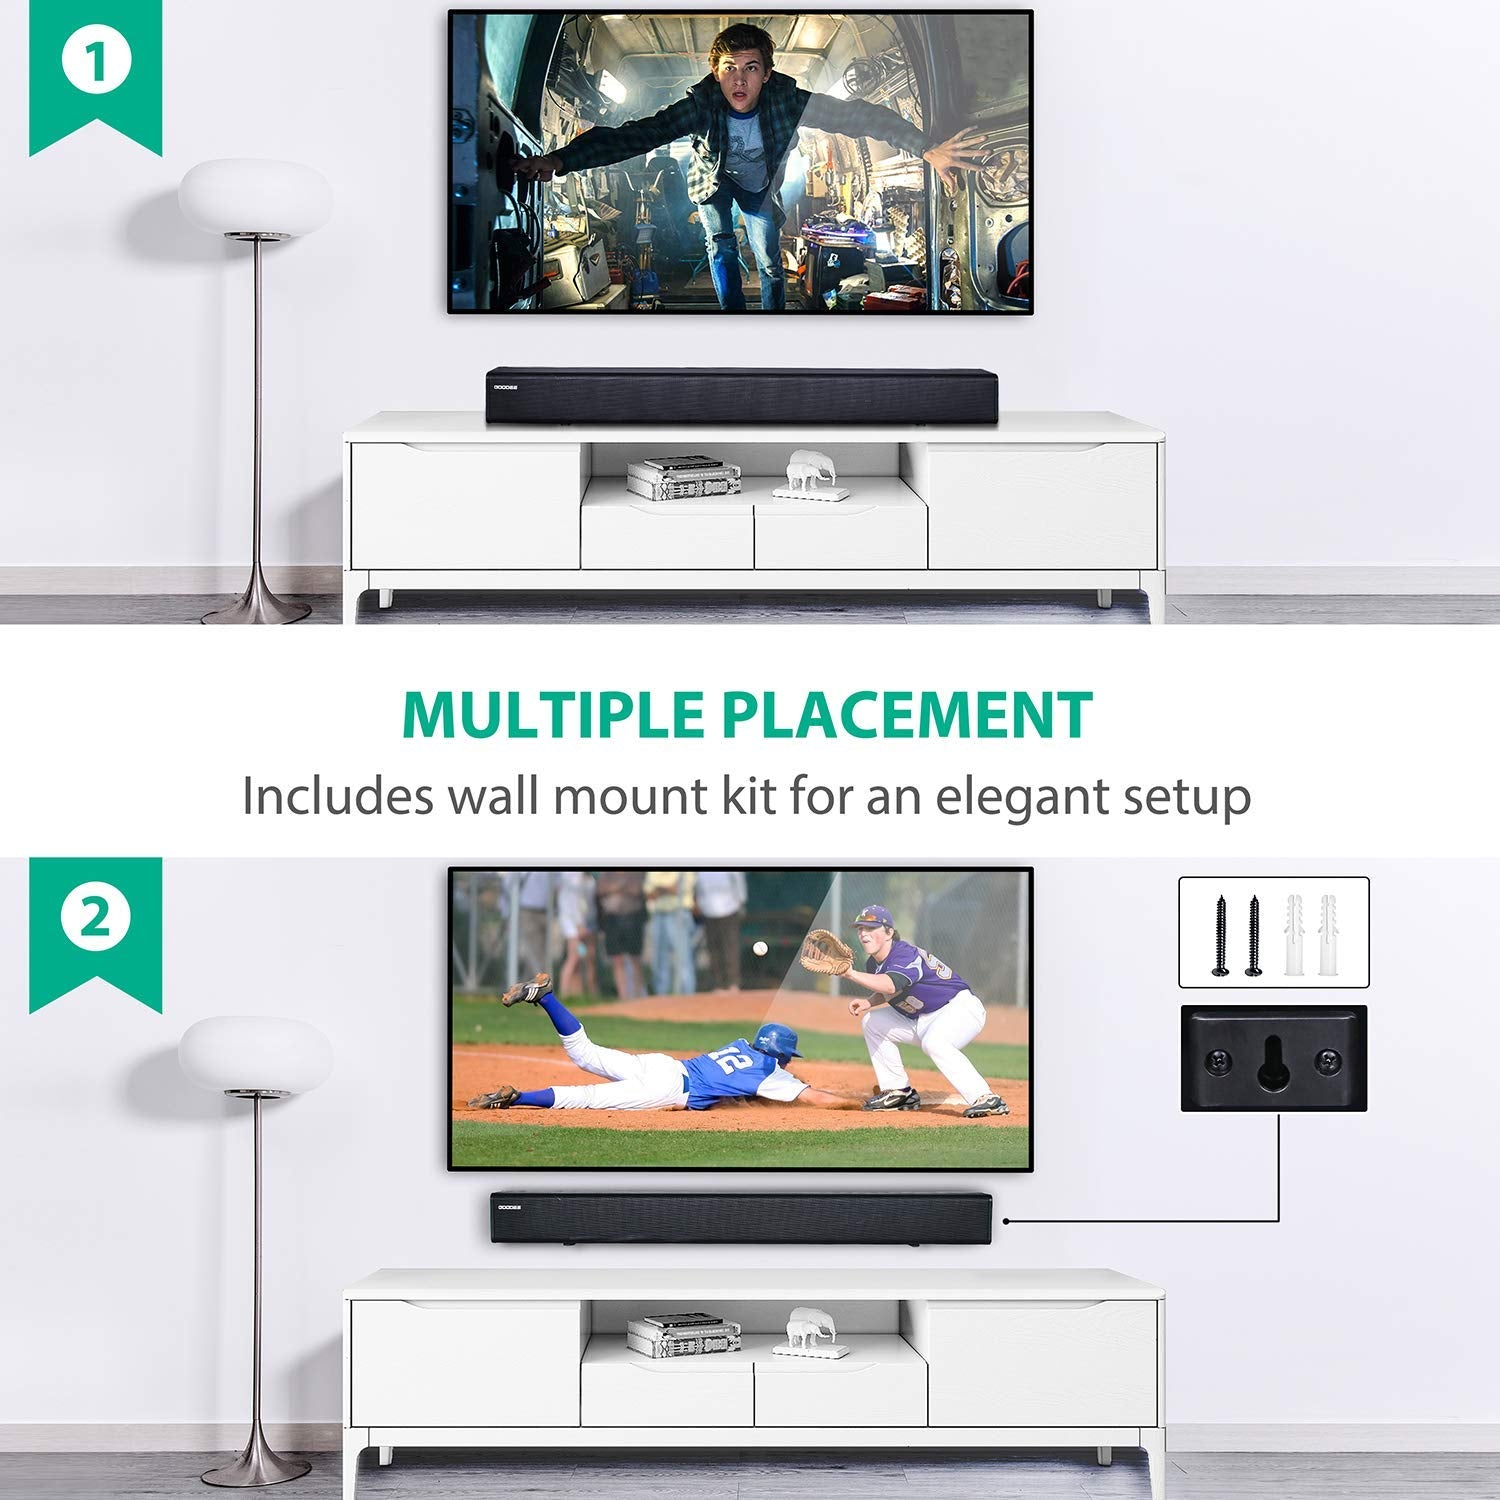 Goodee Sound bar Multiple Placement